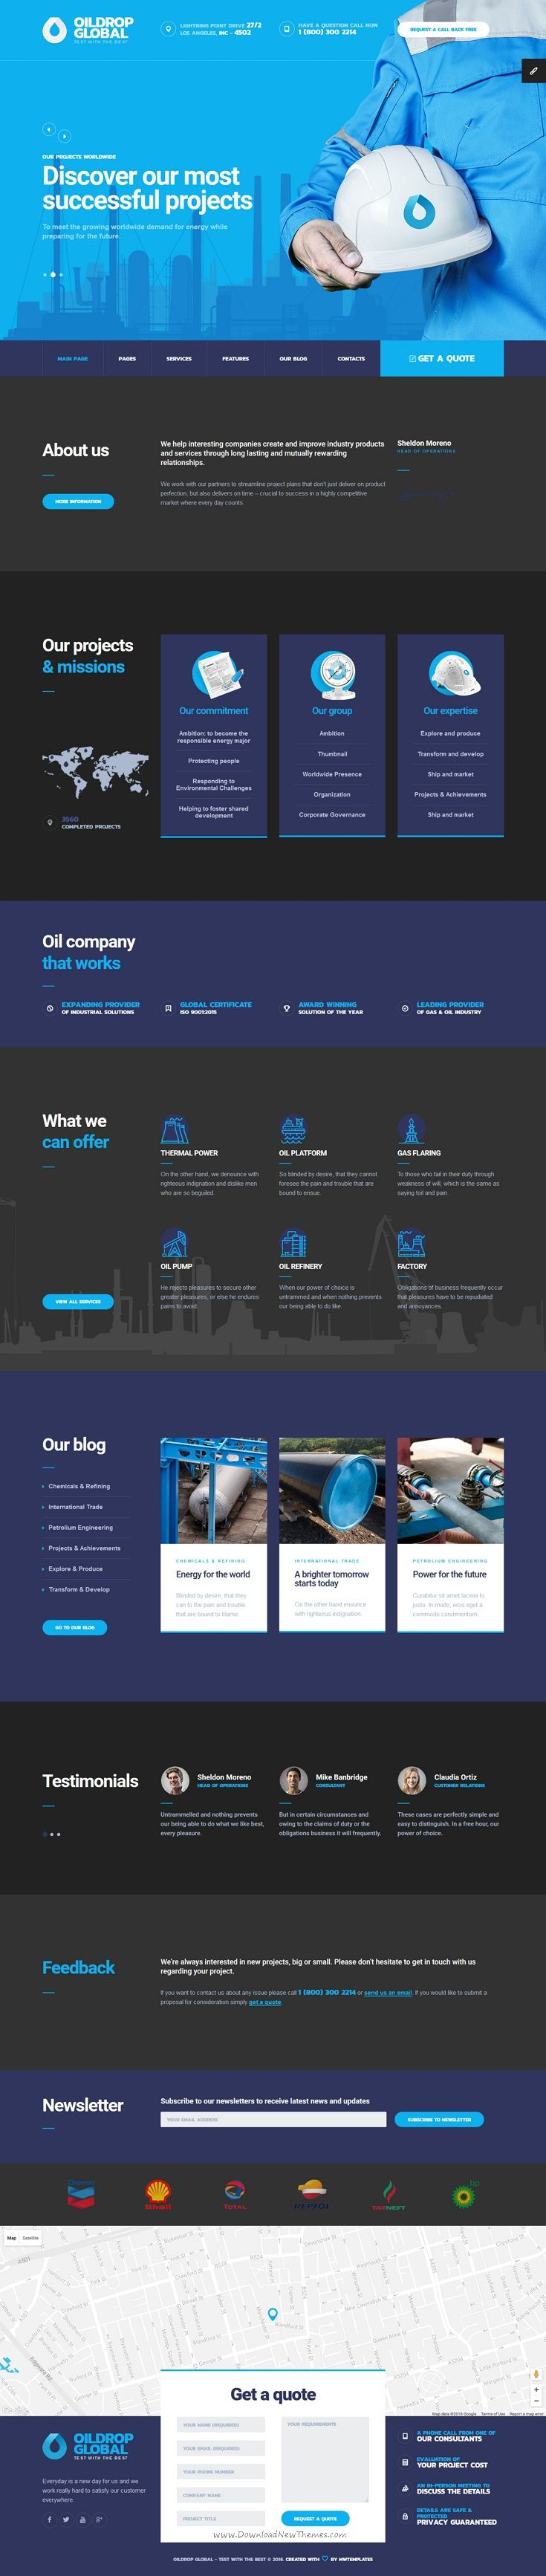 OilDrop is a modern and exquisite #bootstrap #HTML template for industrial, engineering #business or oil production #company website download now➩ https://themeforest.net/item/oildrop-oil-and-gas-industrial-html-template-with-builder/18817614?ref=Datasata